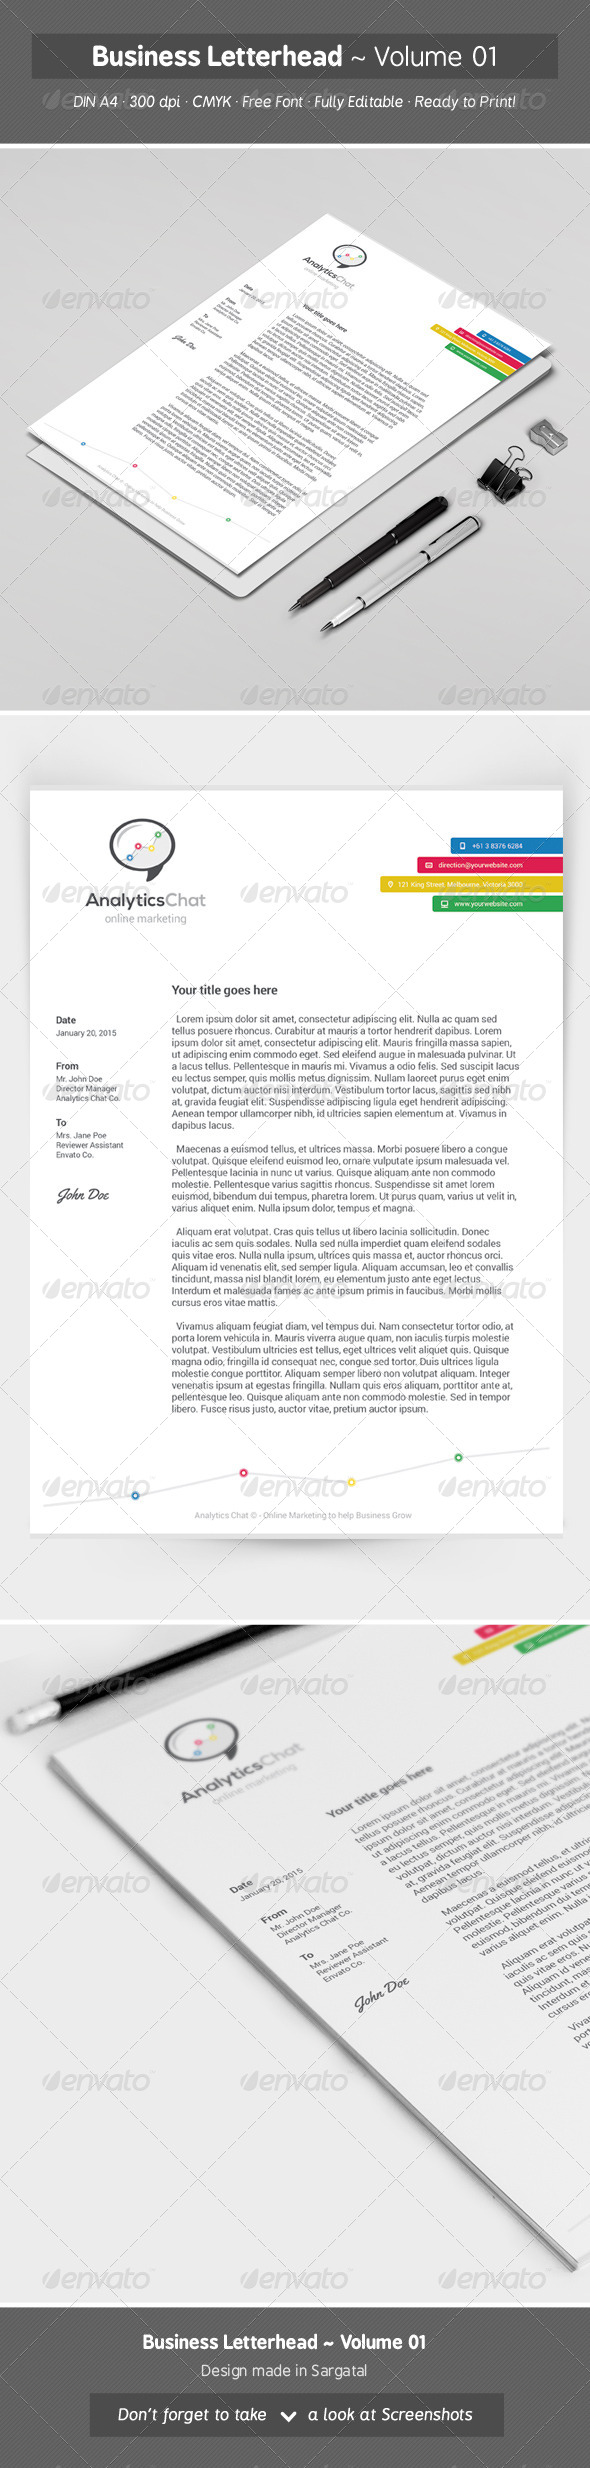 GraphicRiver Business Letterhead Volume 01 8431055